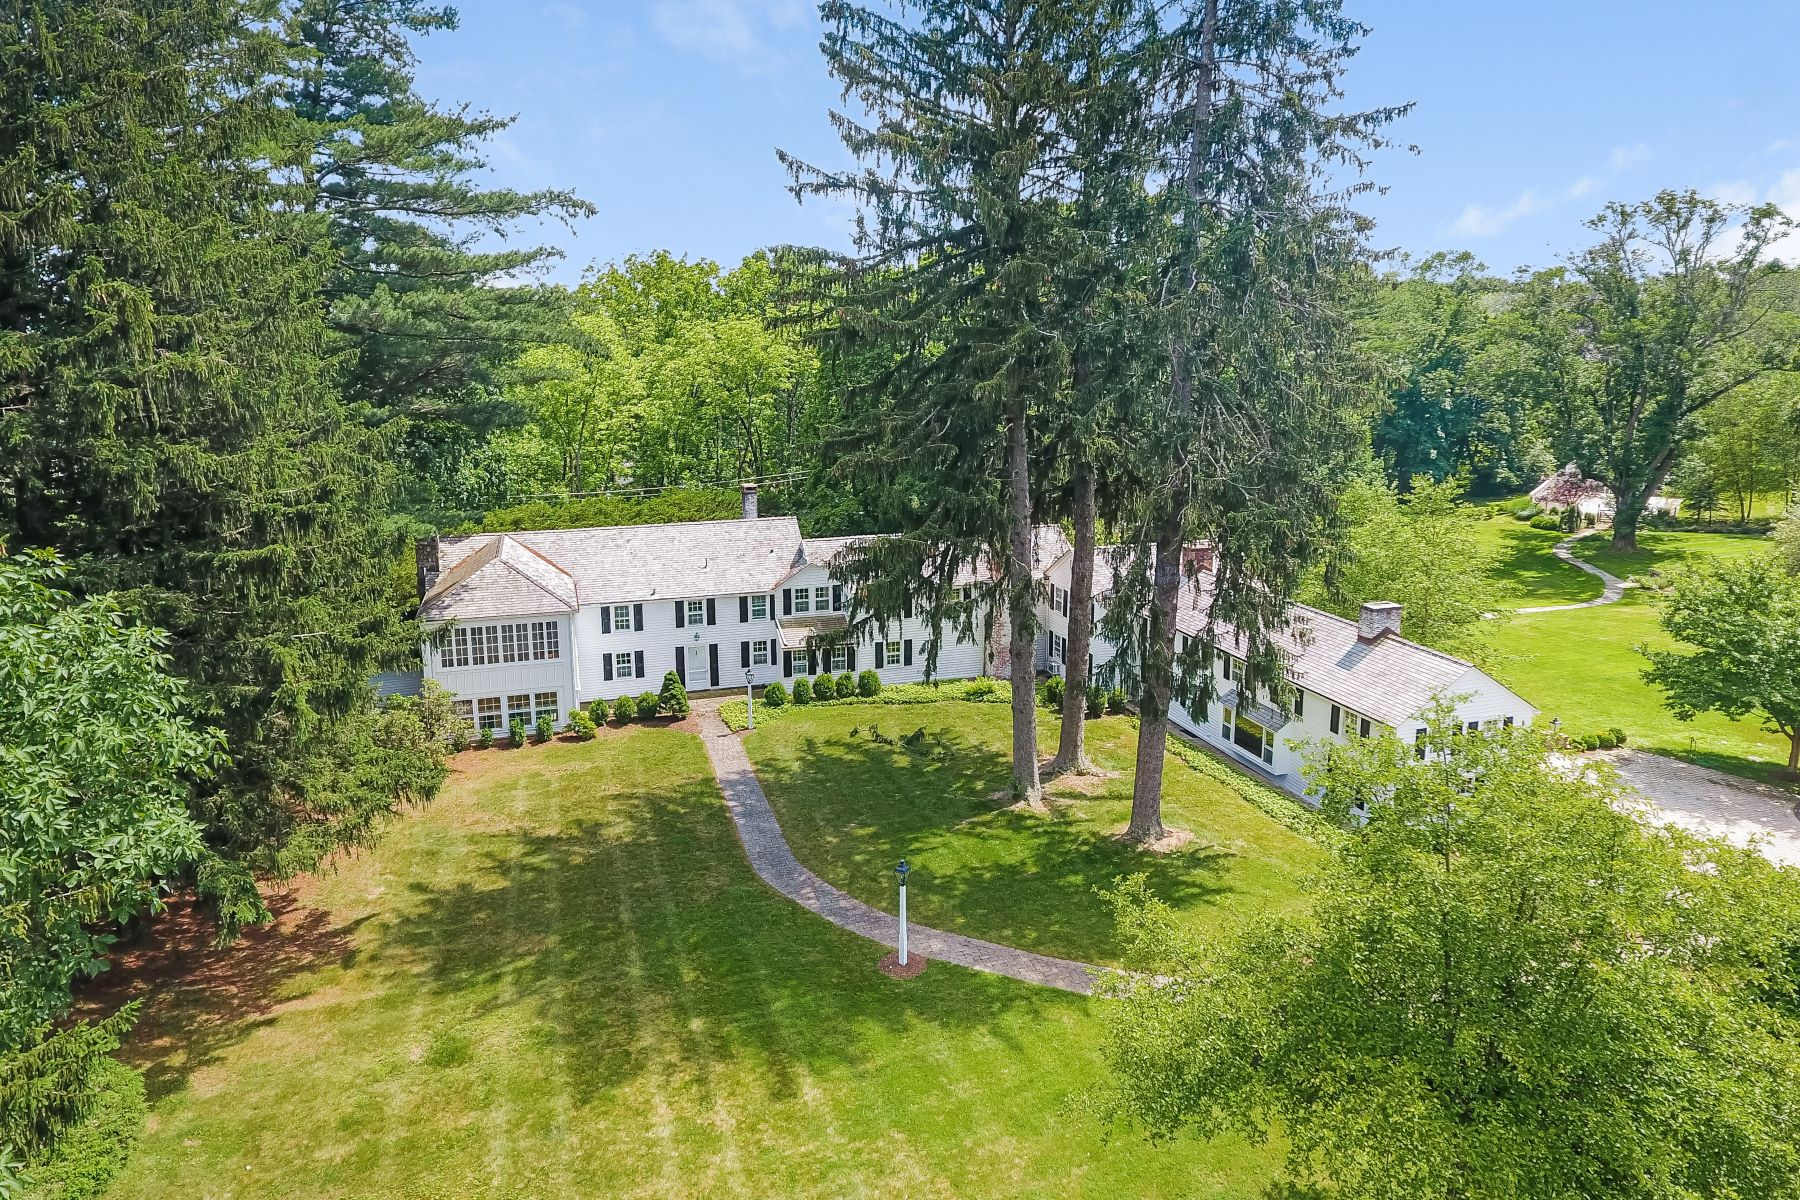 Casa Unifamiliar por un Venta en Beautifully Appointed 500 Old Chester Road Chester, Nueva Jersey 07930 Estados UnidosEn/Alrededor: Chester Township